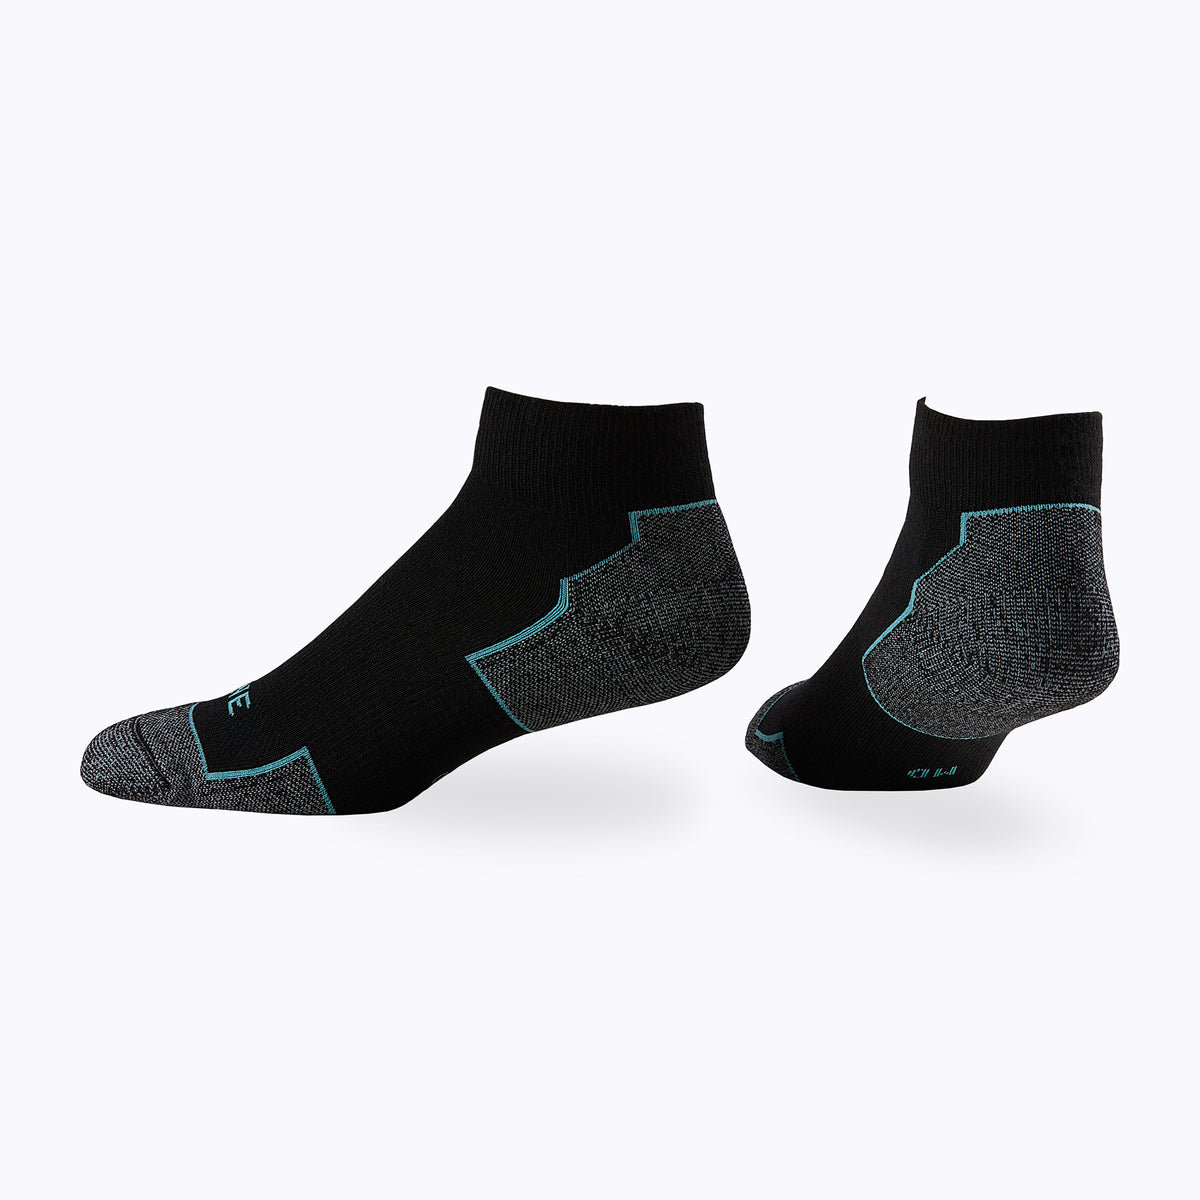 Everyday 3 Pack Women's Qtr Socks -  by Canyon x Lane Socks